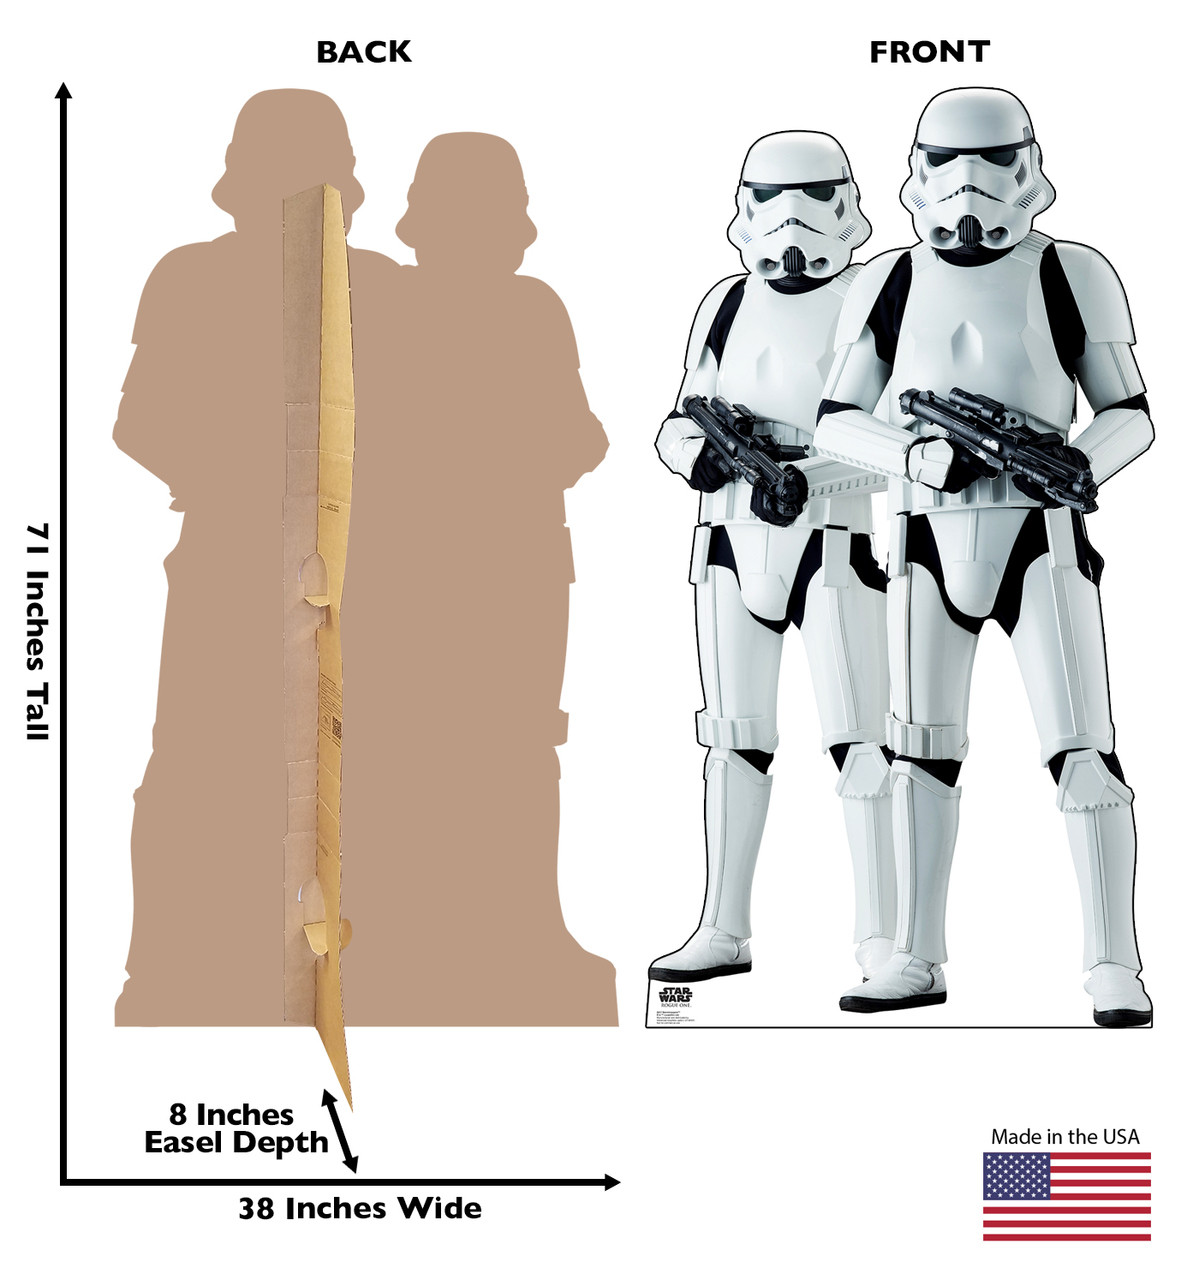 Two Stormtroopers - Rogue One Cardboard Cutout 2257